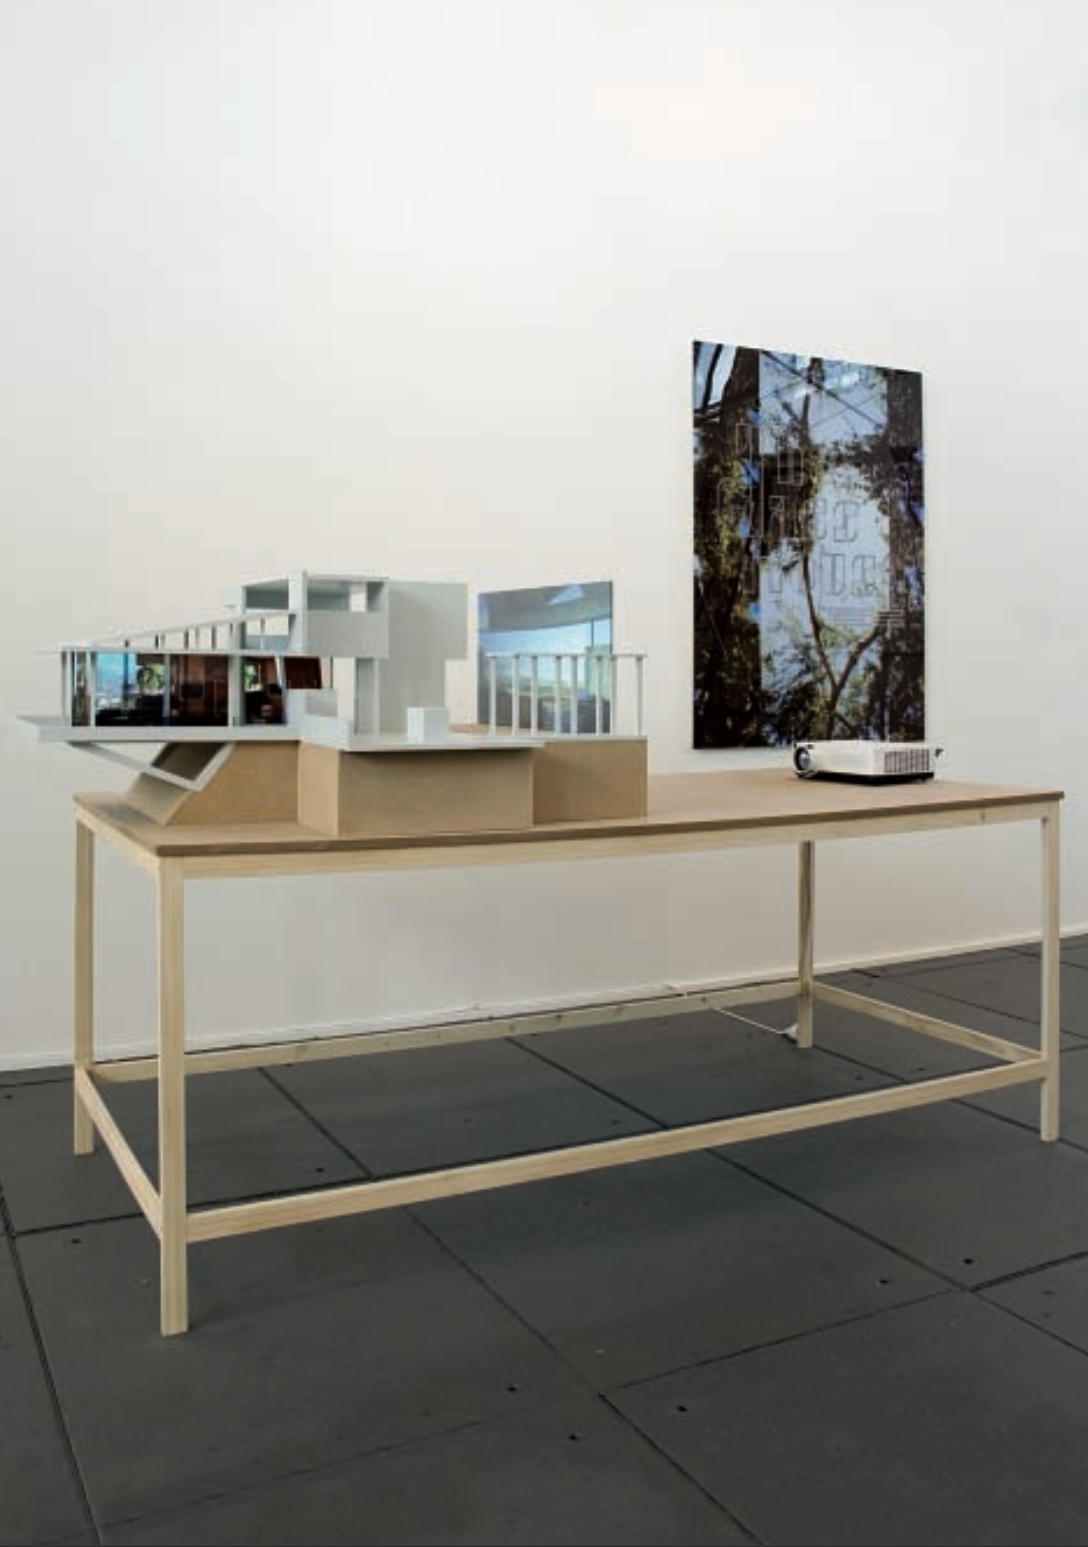 Galerie Grita Insam, Drawn to Architecture, curated by_Amy Yoes, 2010, Karina Nimmerfall, The Glass House, 2009